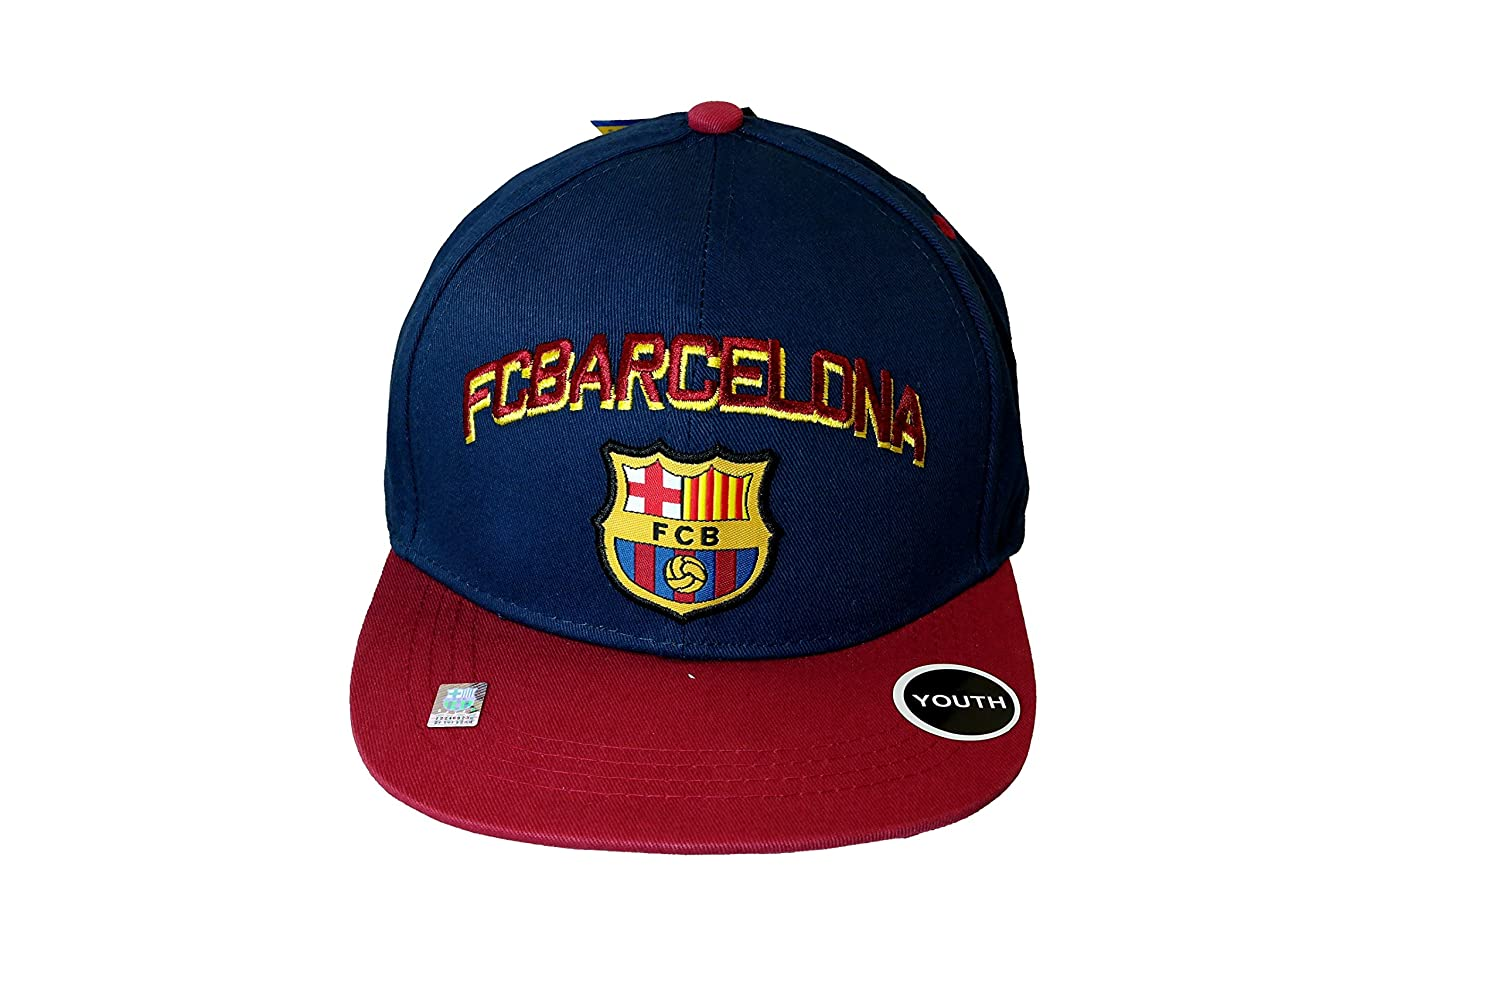 ユースFC Barcelona Authentic Official Licensed Product Soccerキャップ – 02 – 3 B07B8FHN3H